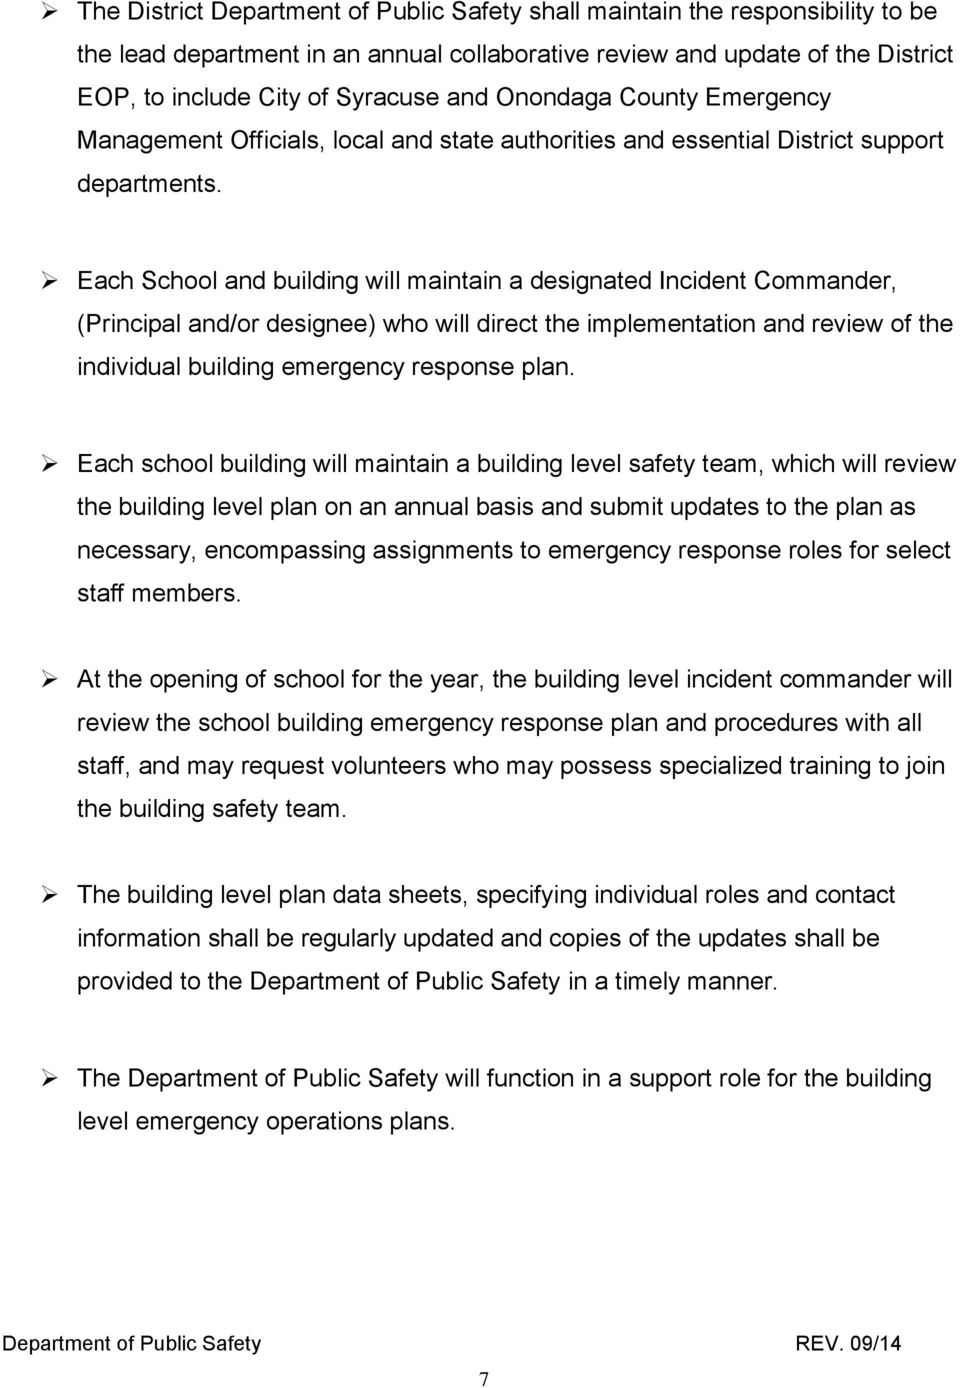 Each School and building will maintain a designated Incident Commander, (Principal and/or designee) who will direct the implementation and review of the individual building emergency response plan.